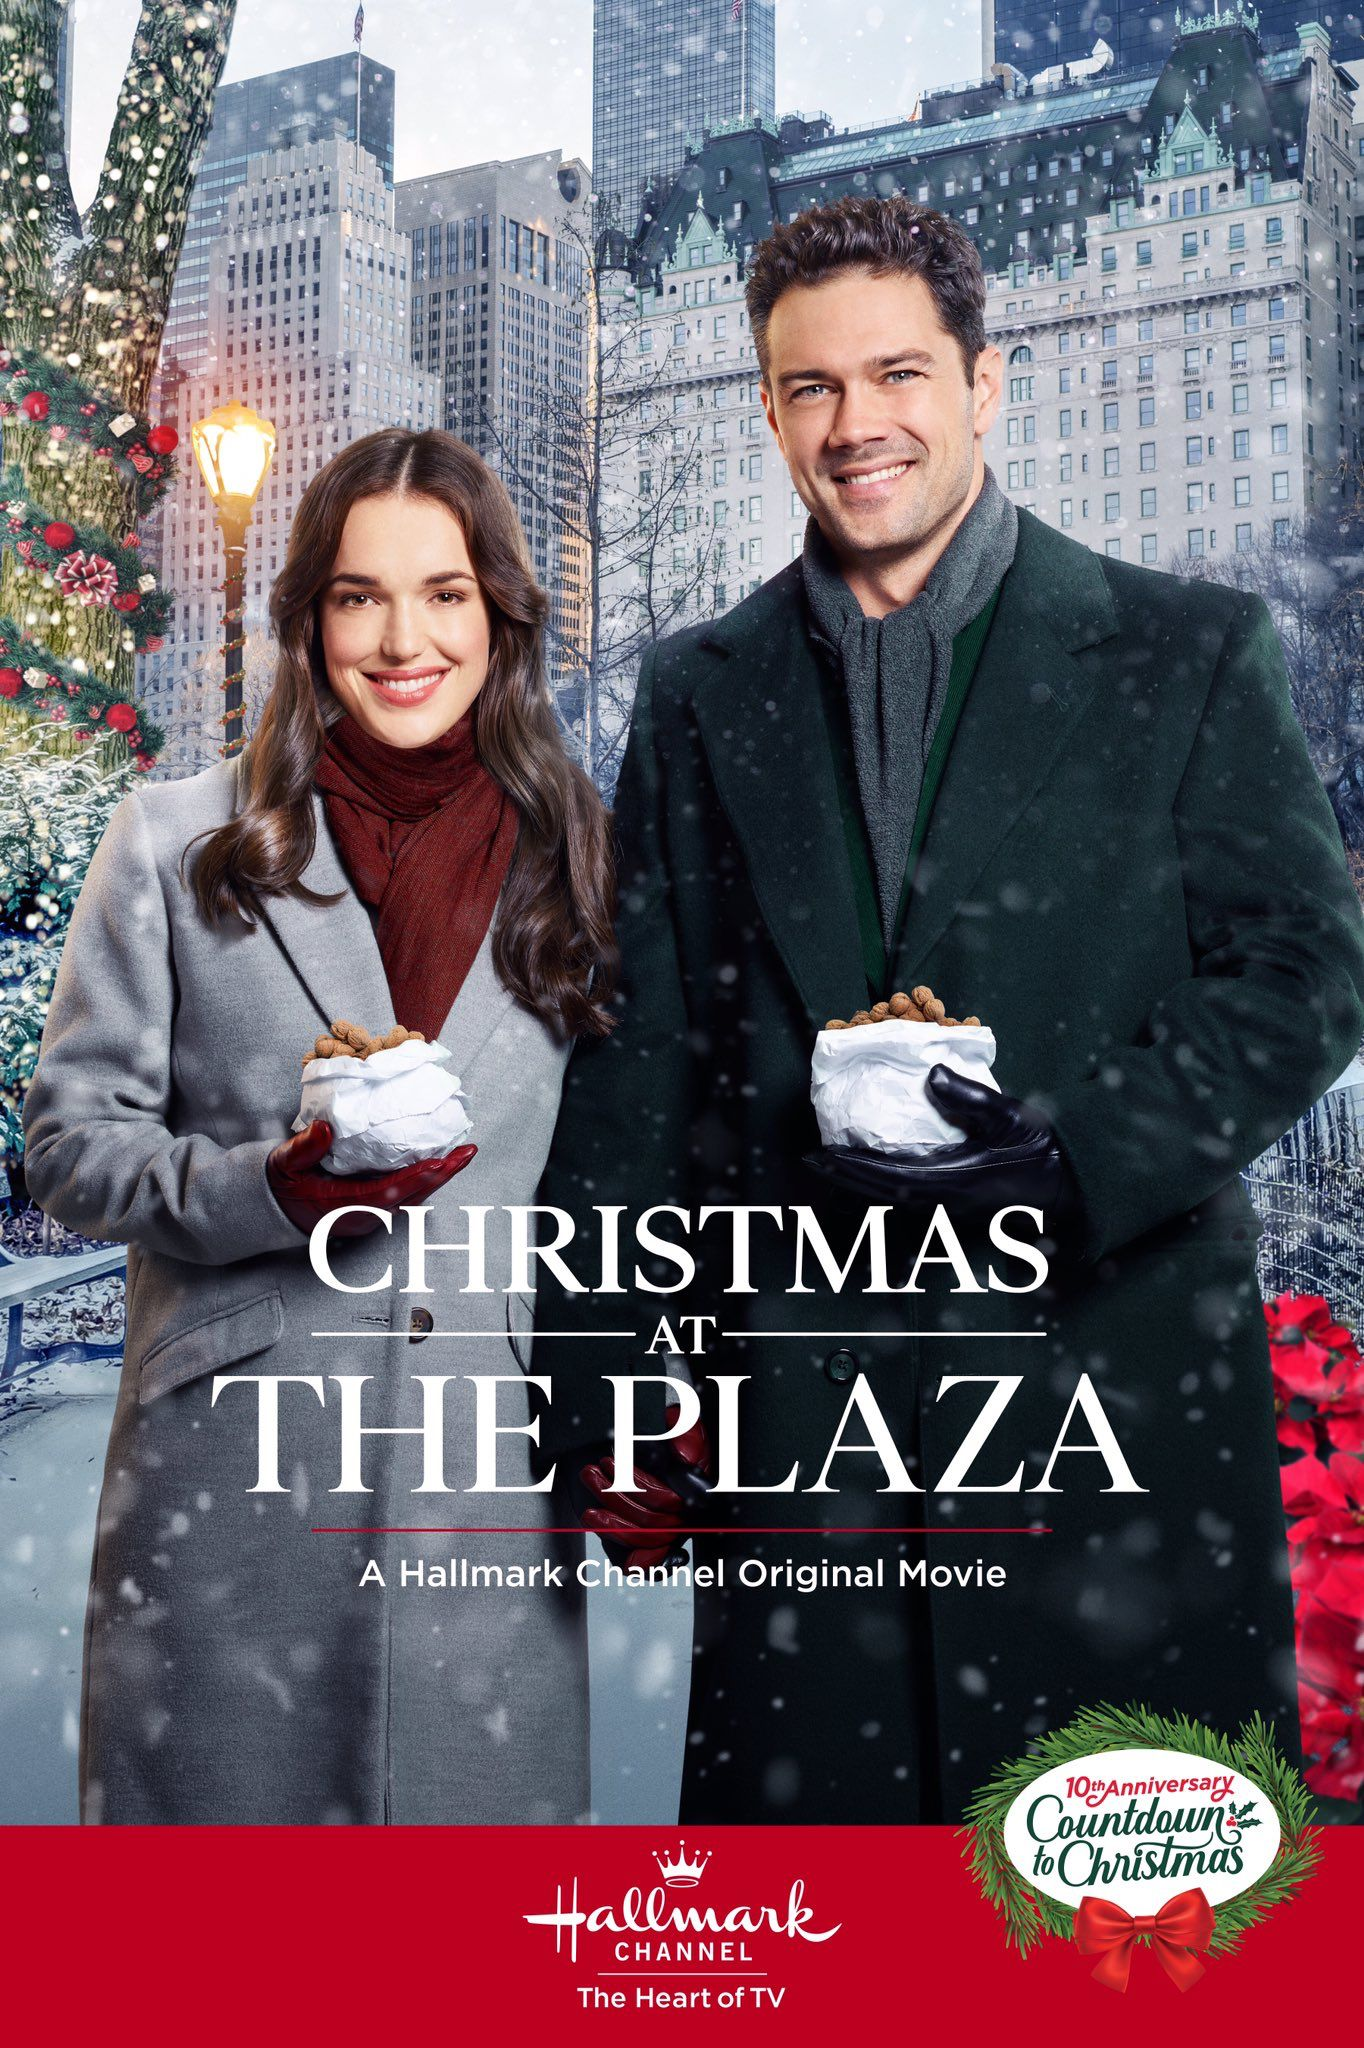 Pin by Bethany Jayne Michelle Breckon on Hallmark Movies